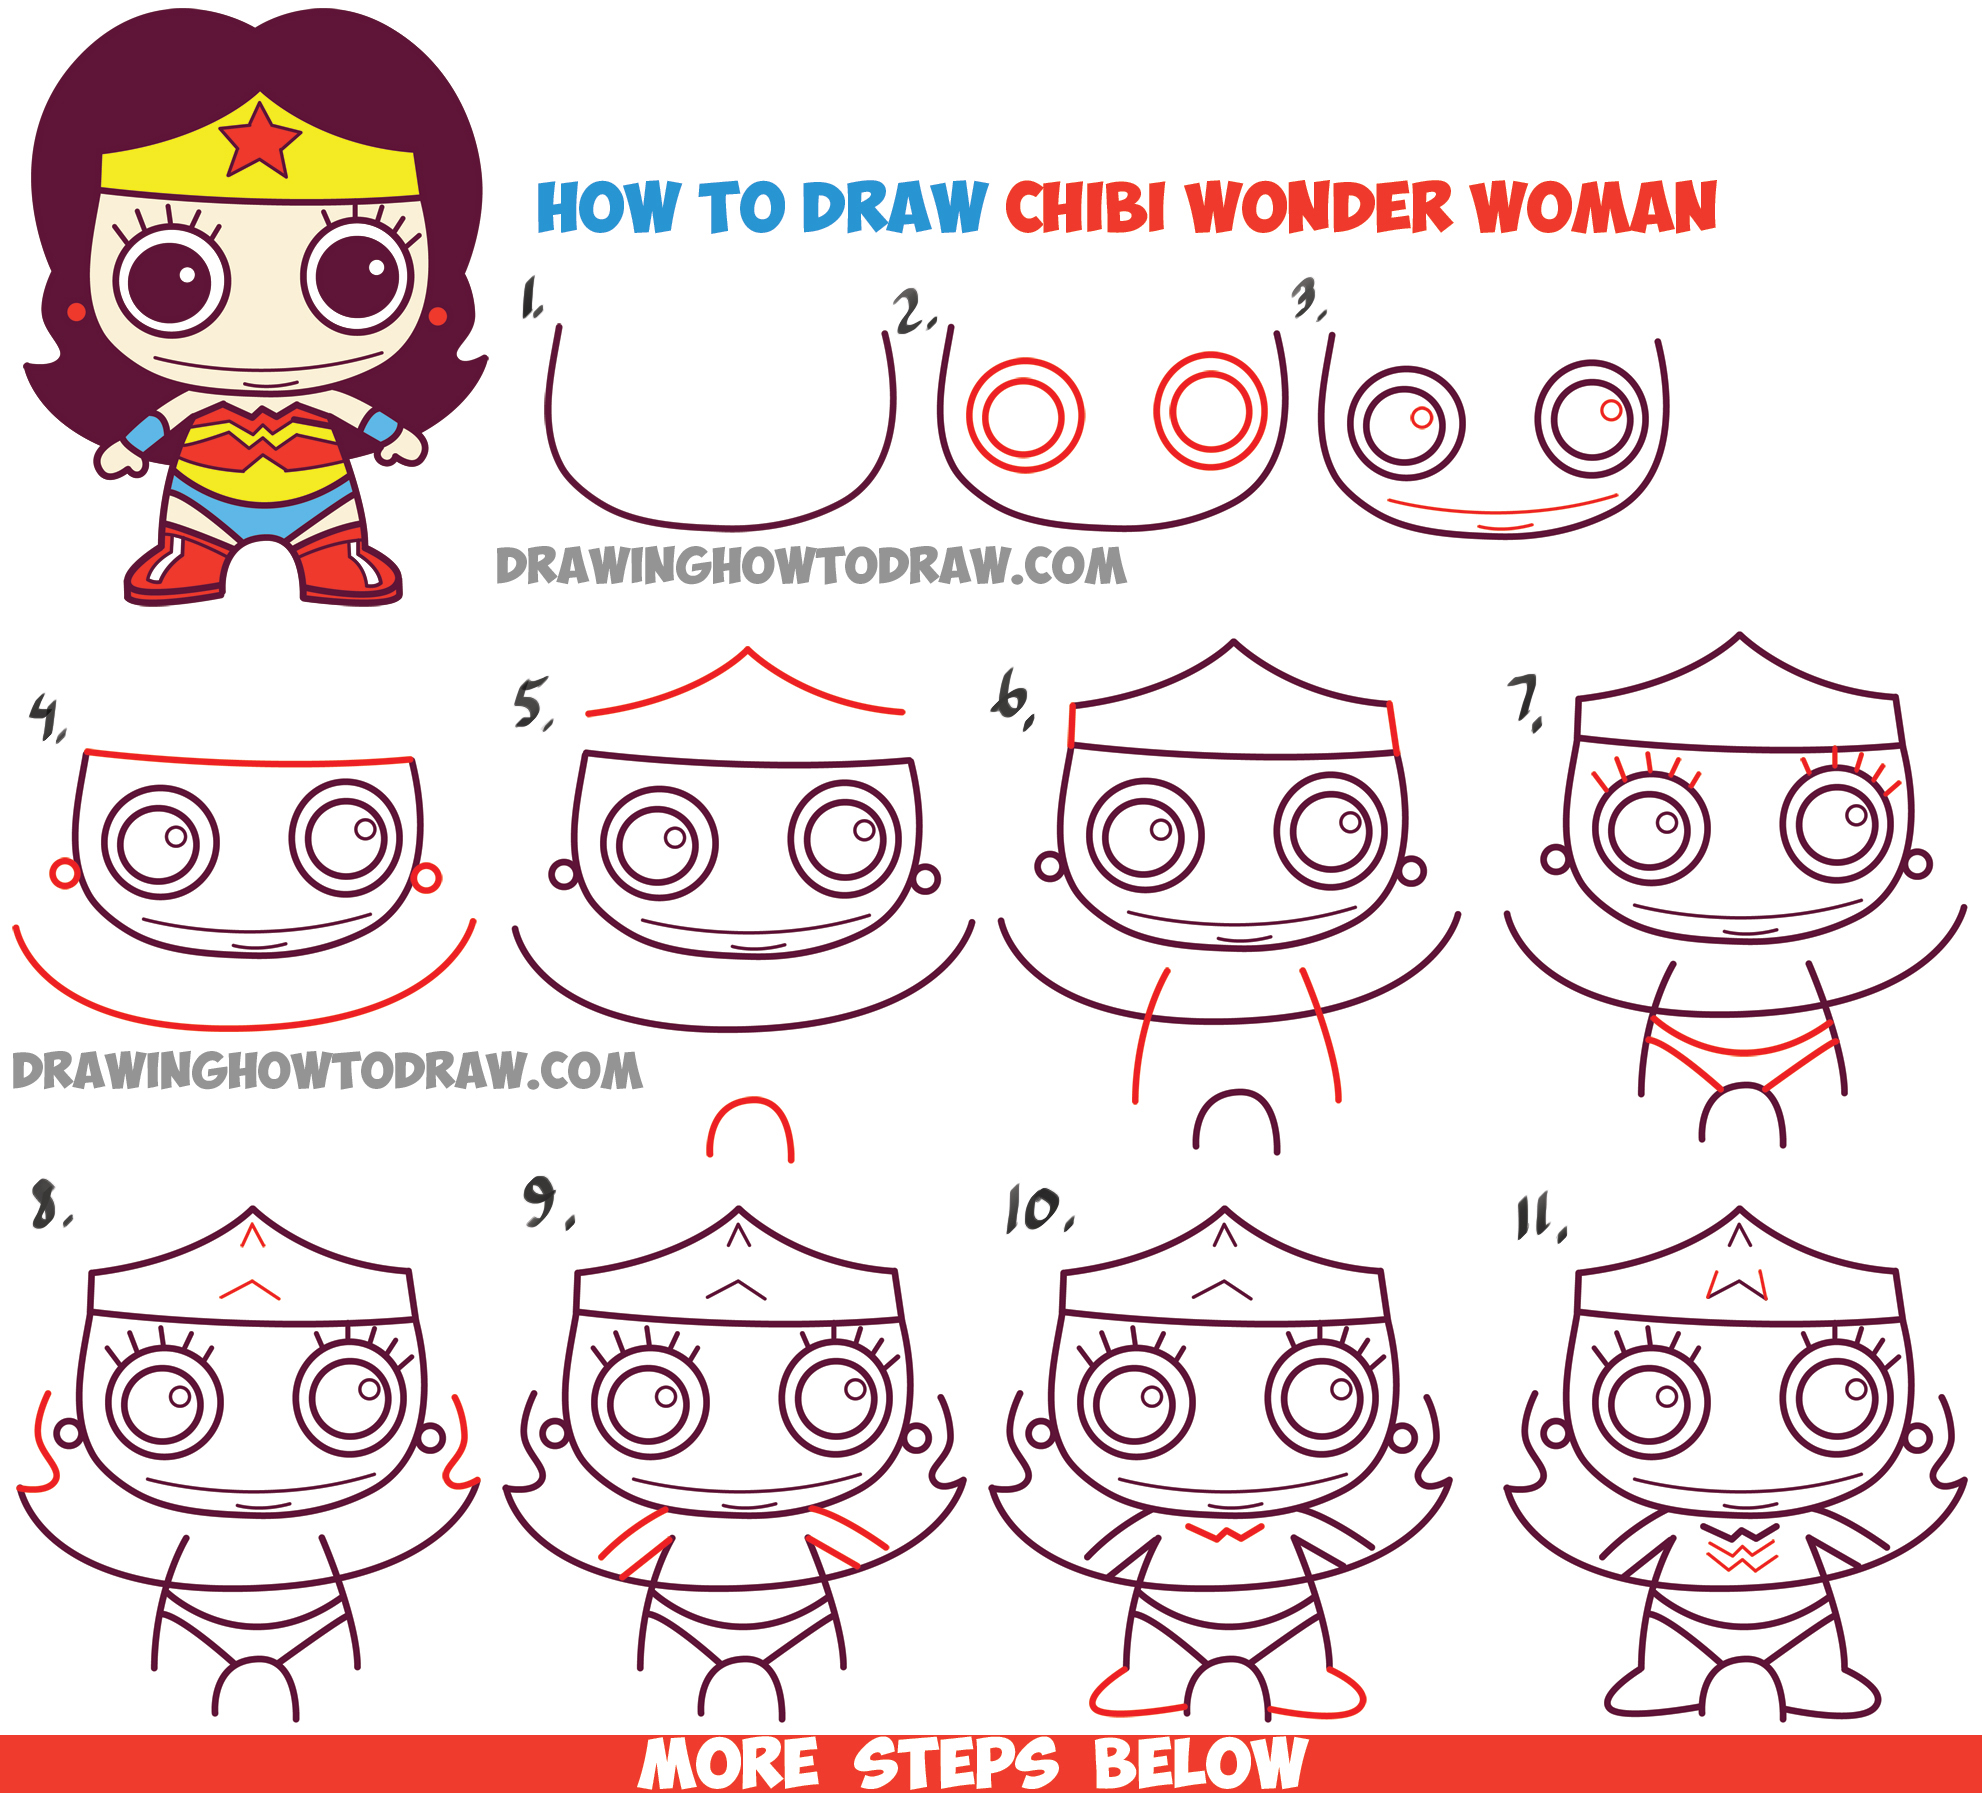 How to Draw Cute Chibi Wonder Woman from DC Comics in Easy Step by Step Drawing Tutorial for Kids